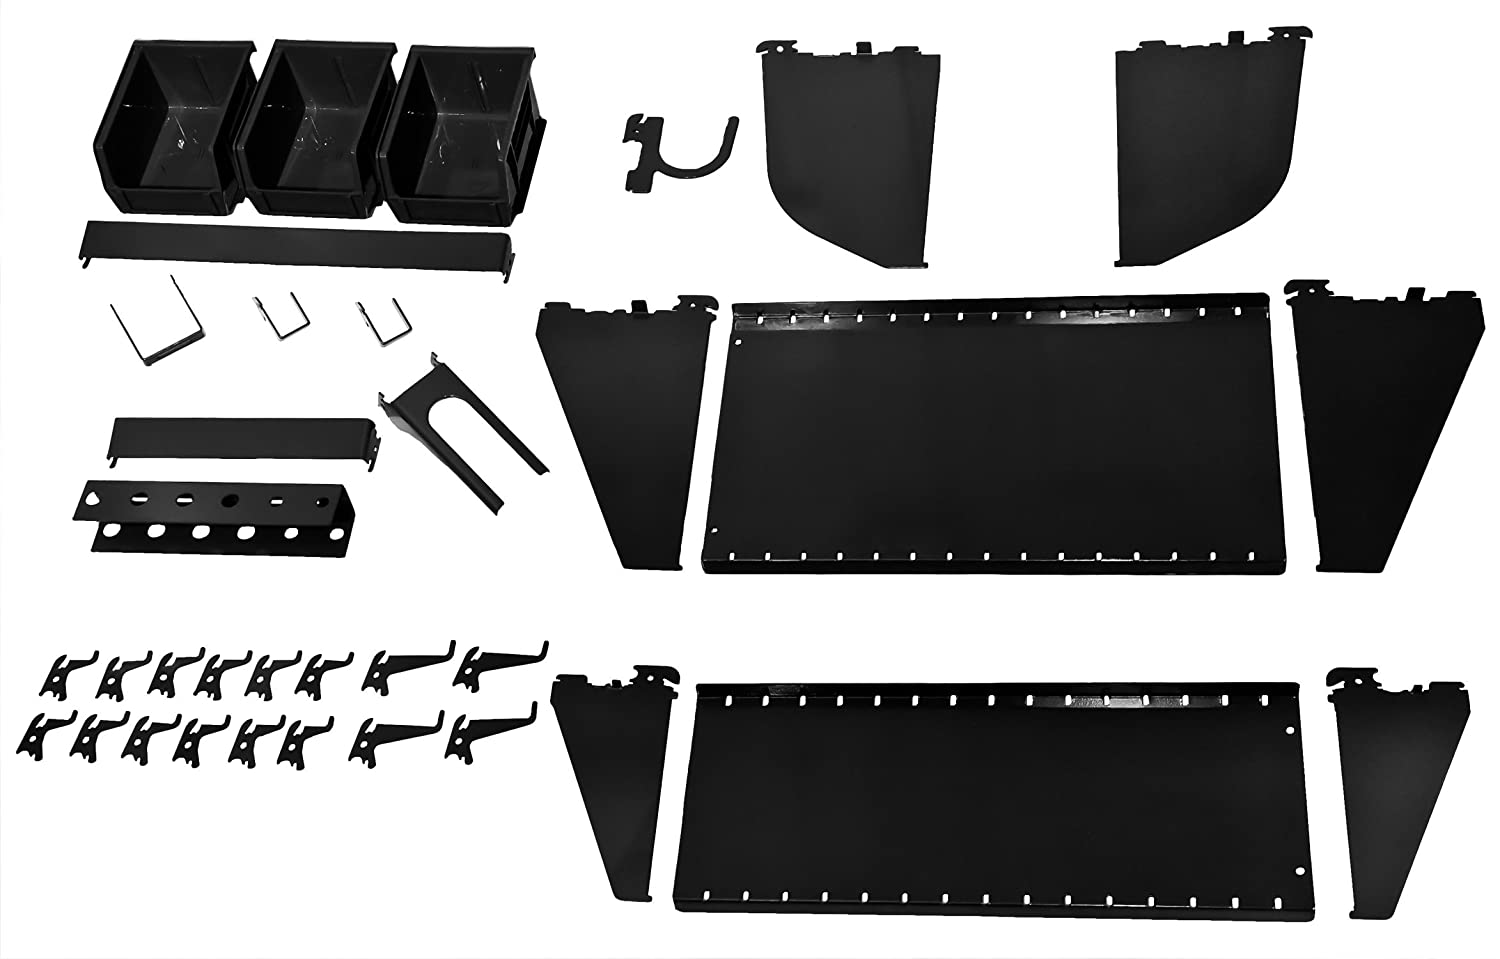 Wall Control KT 400 WRK B Slotted Tool Board Workstation Accessory Kit for Wall Control Pegboard Only Black